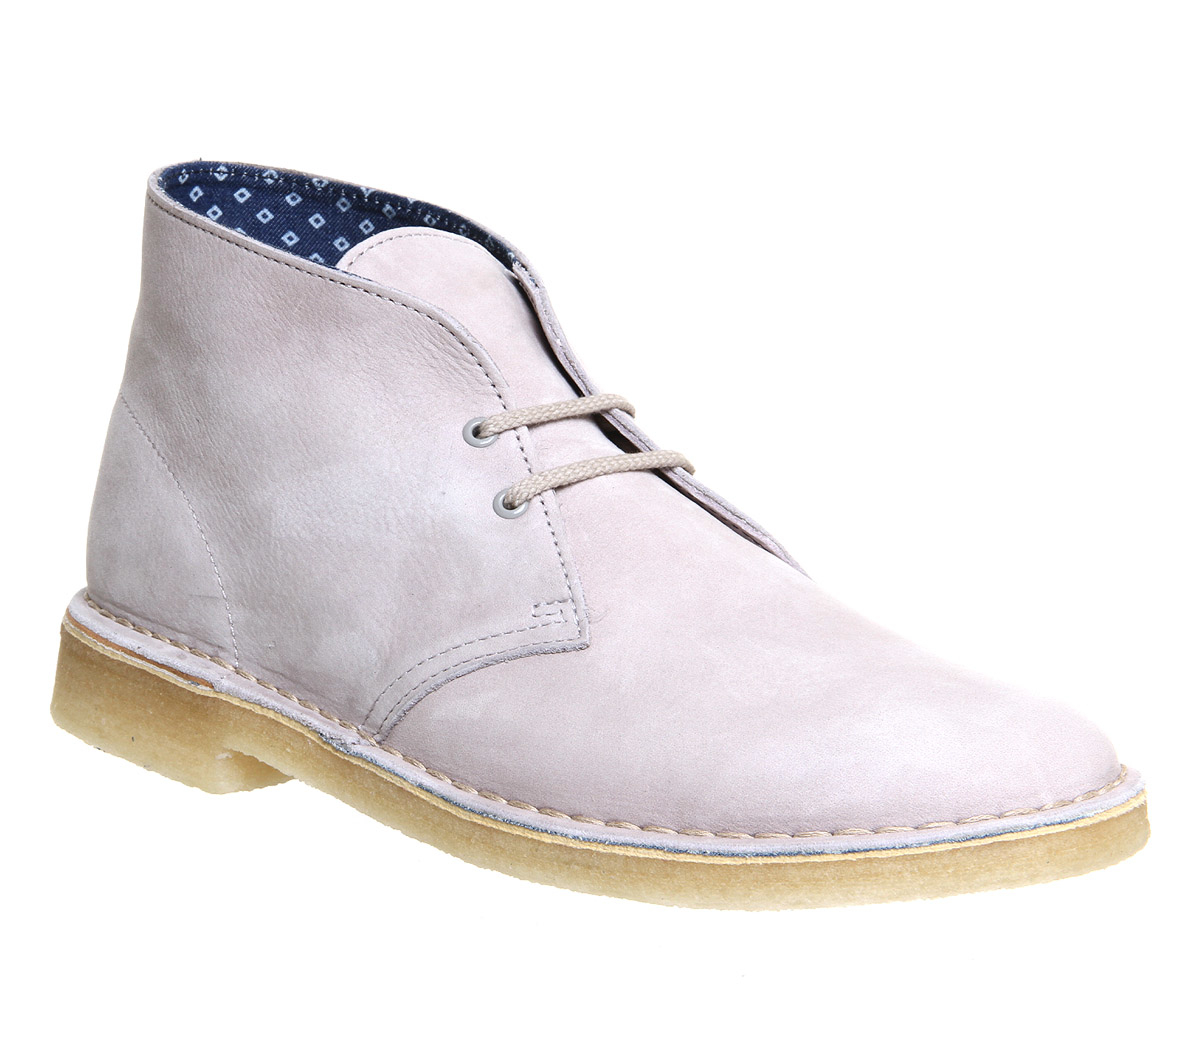 Clarks Desert Boots In White For Men Lyst